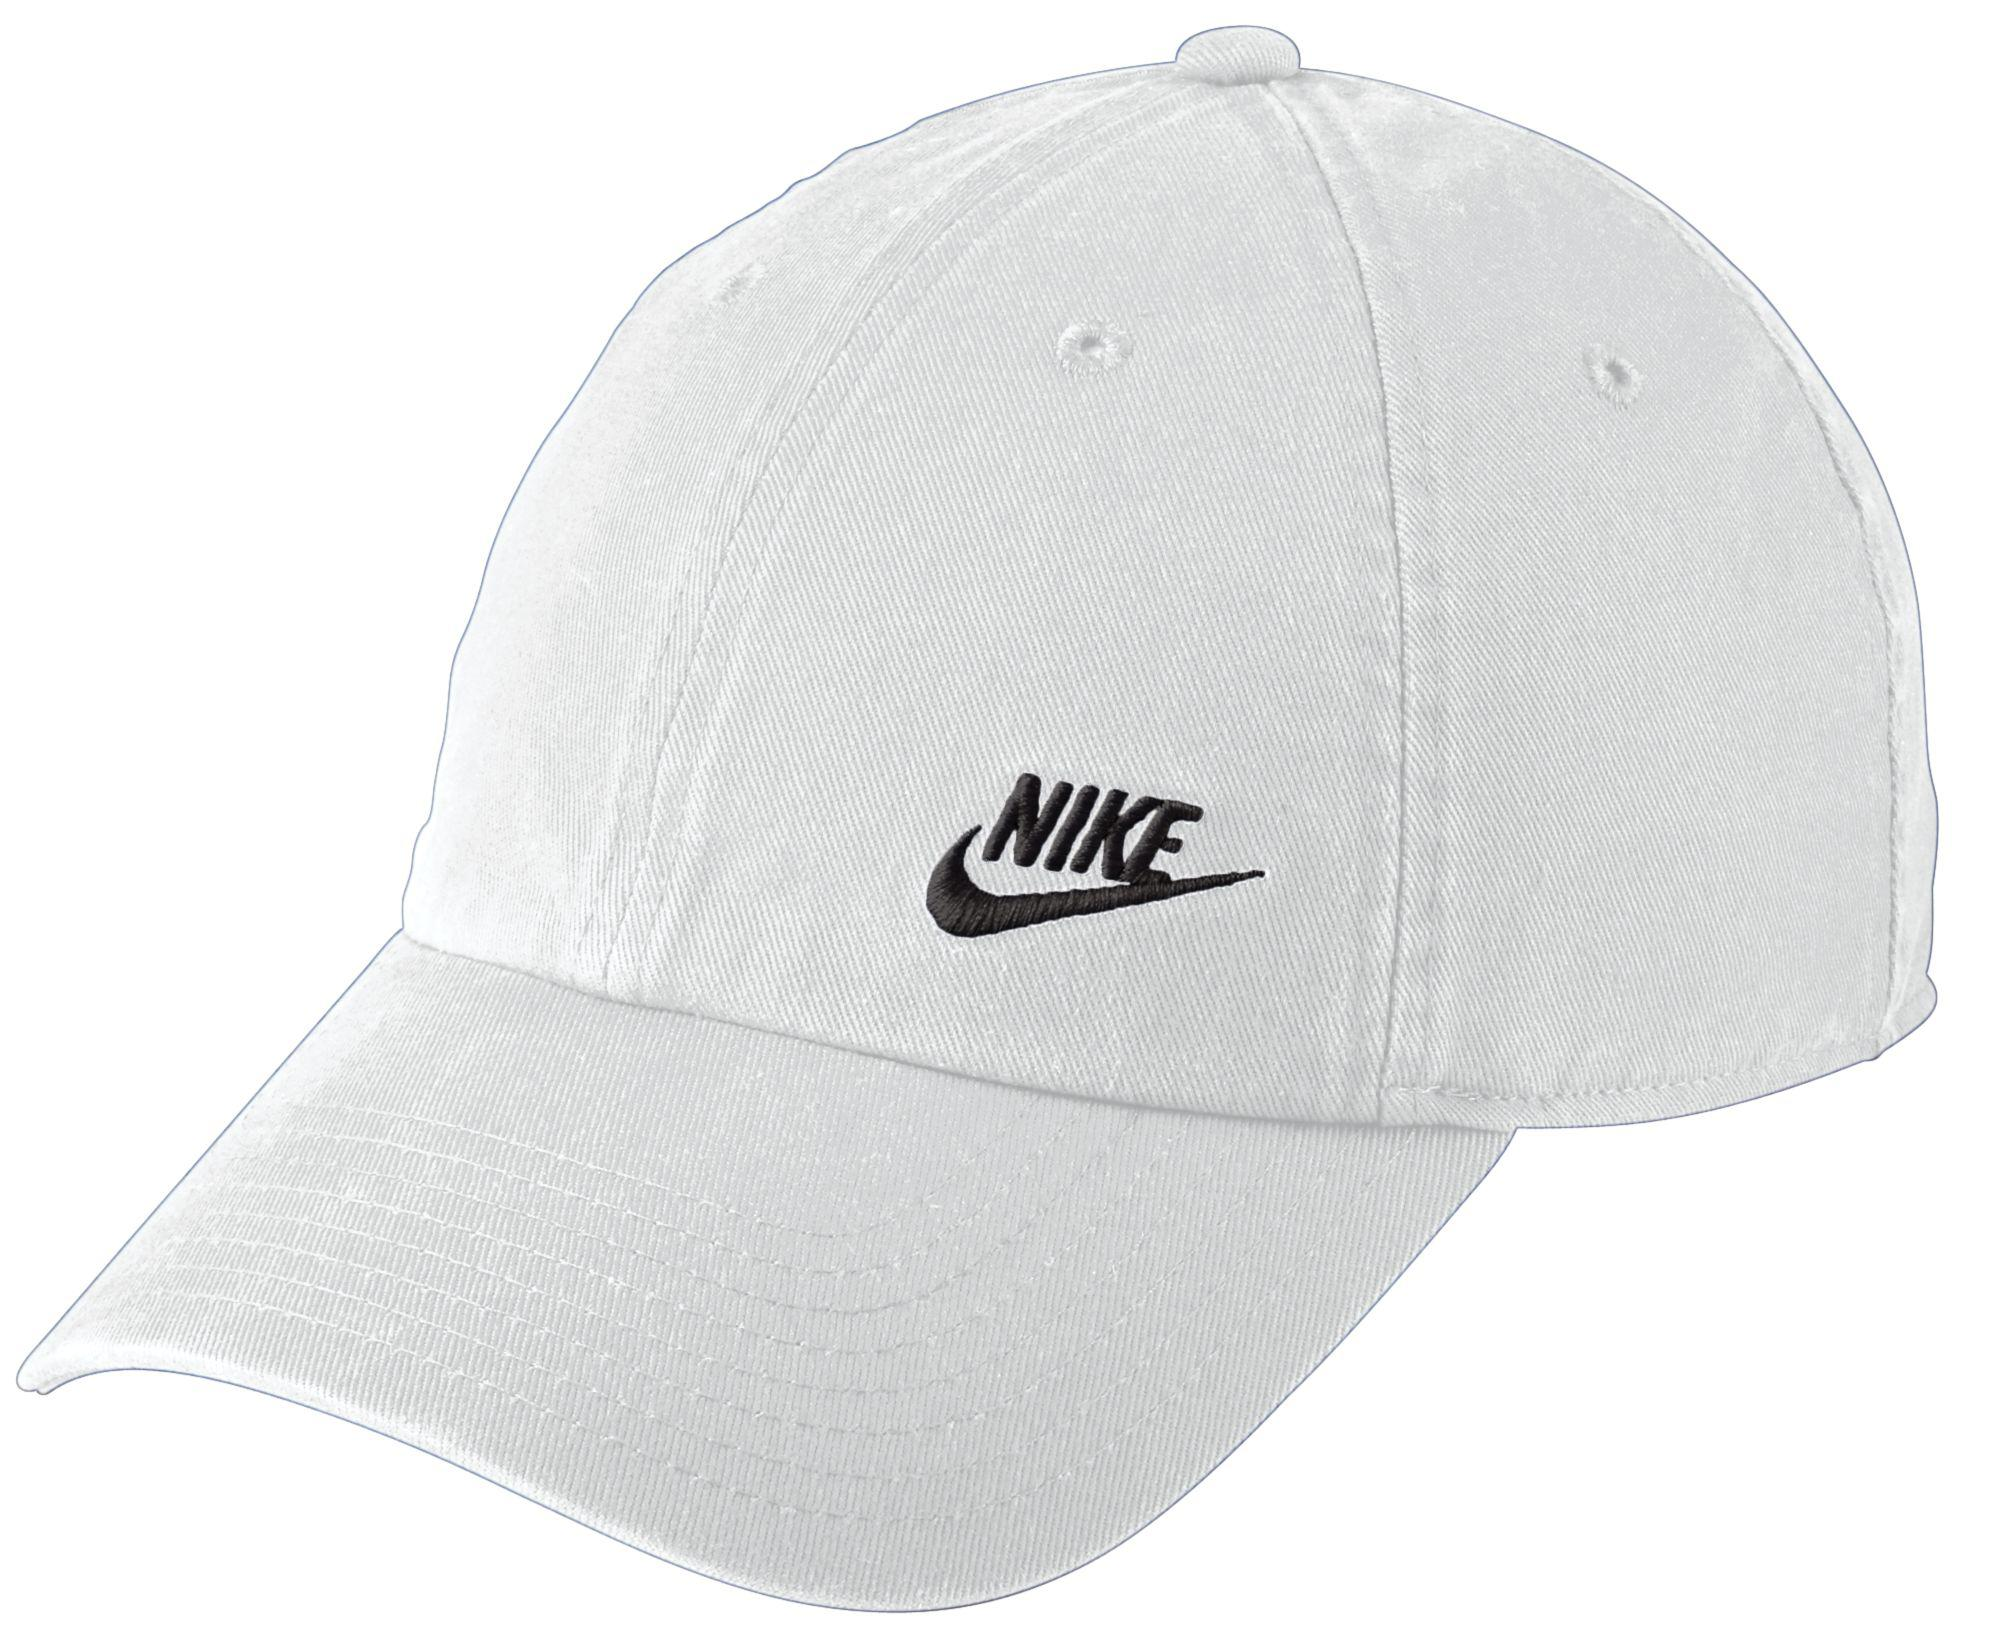 huge selection of 95830 9bd2e Nike. Women s White Twill H86 Adjustable Hat